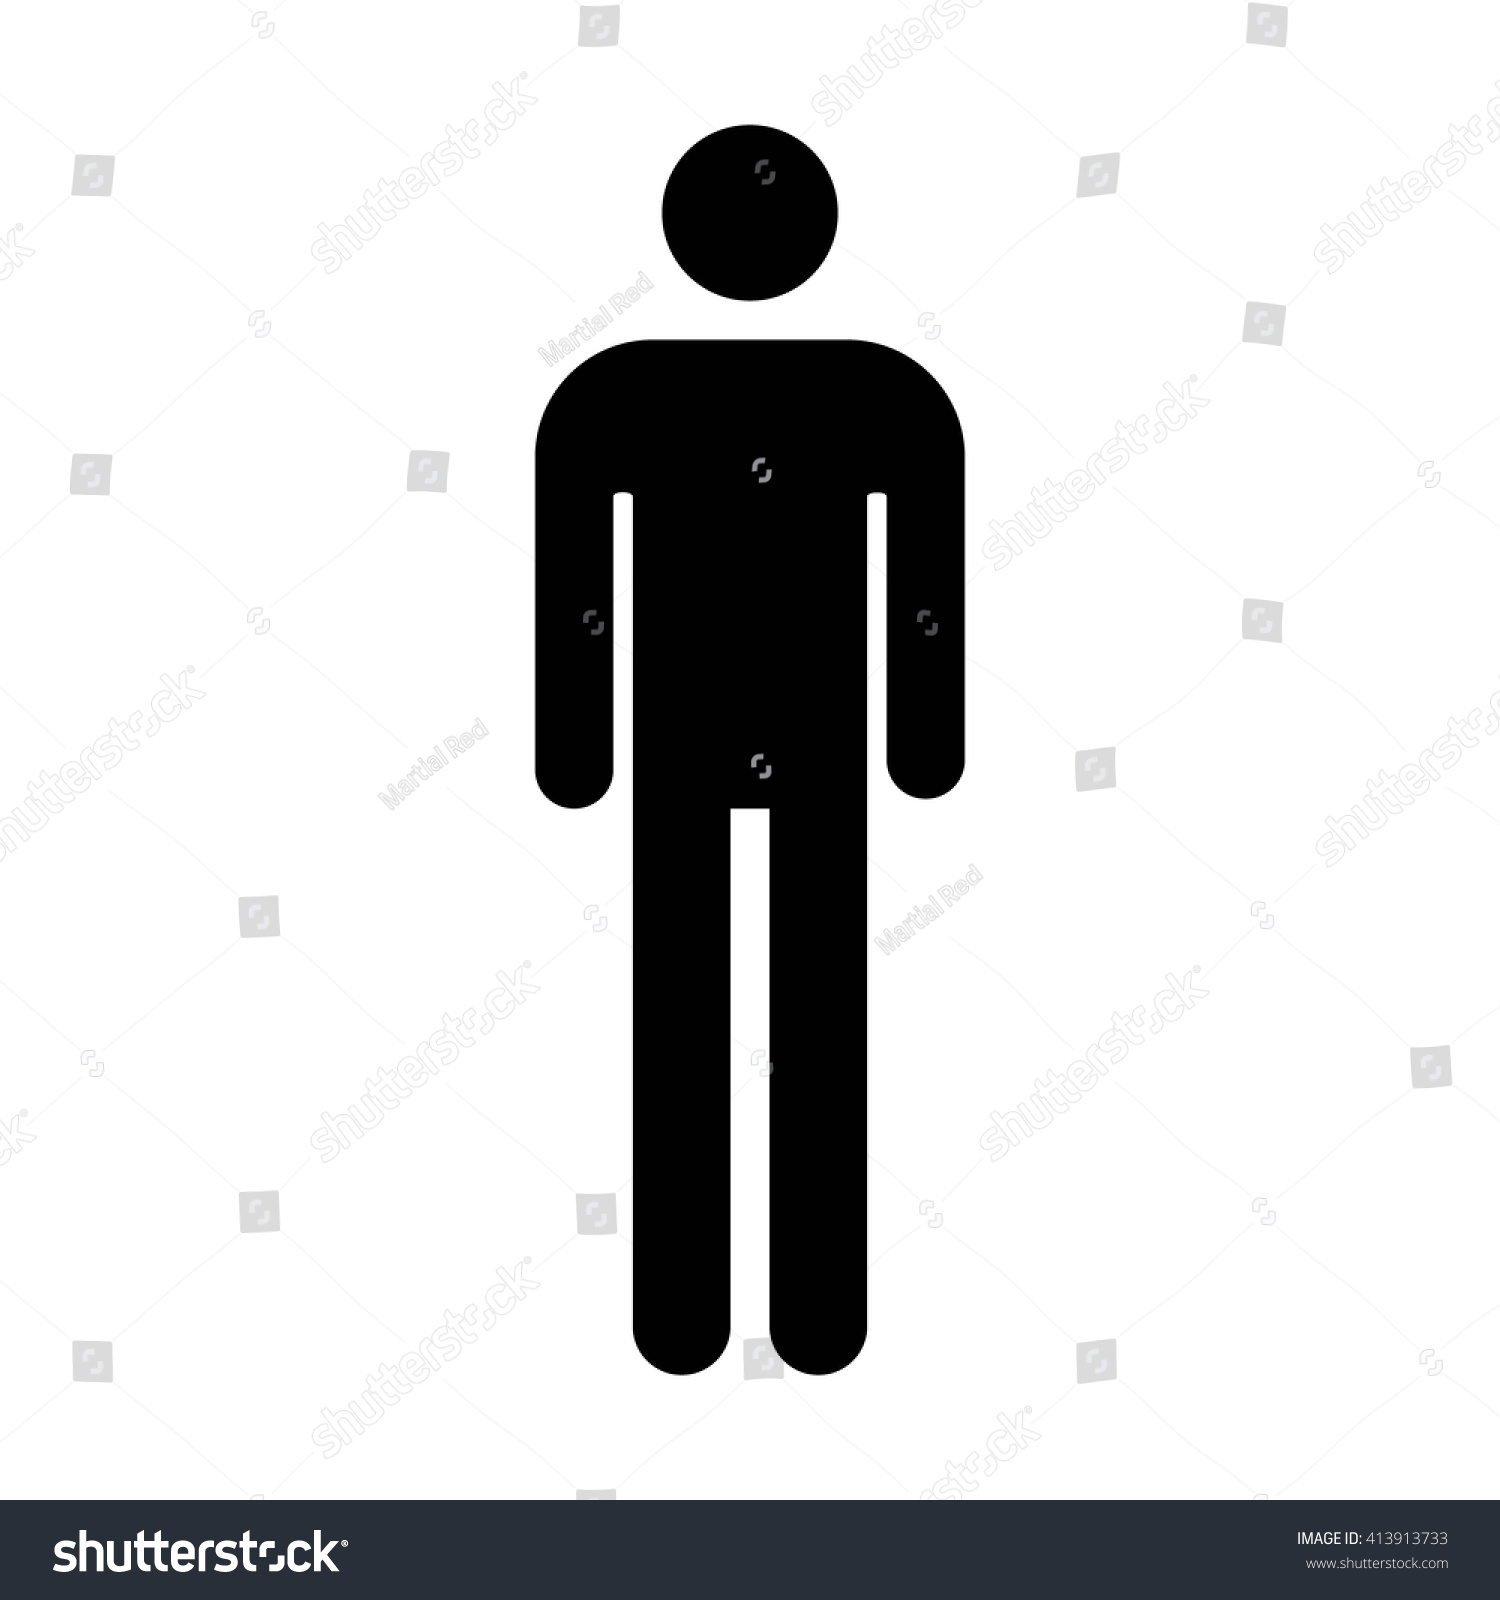 Male Mens Bathroom Restroom Sign Flat Stock Vector 413913733 Shutterstock